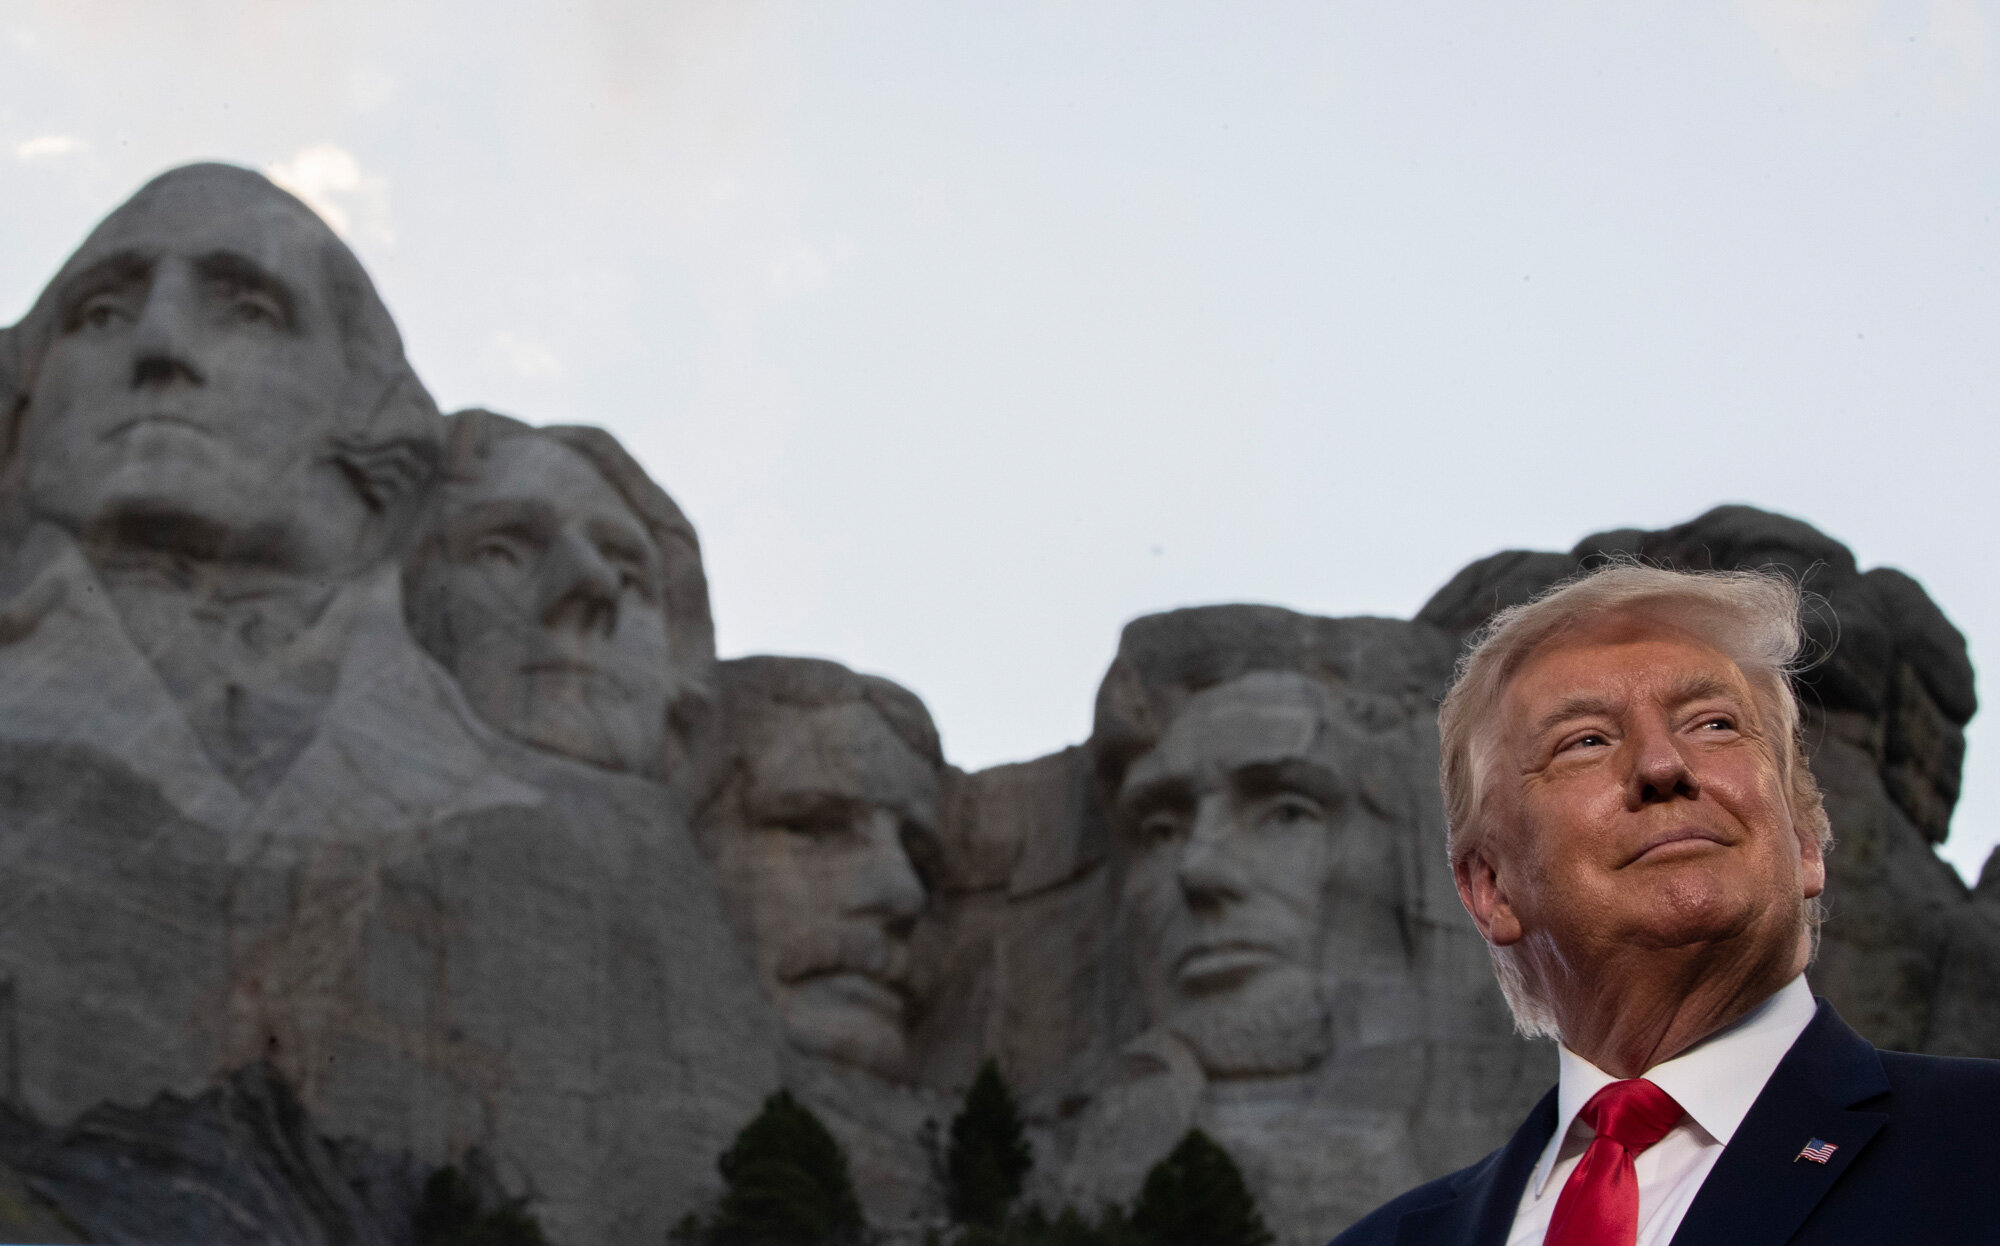 President Donald Trump smiles during a visit to Mount Rushmore National Memorial near Keystone, S.D., on July 3, 2020. (AP Photo/Alex Brandon)